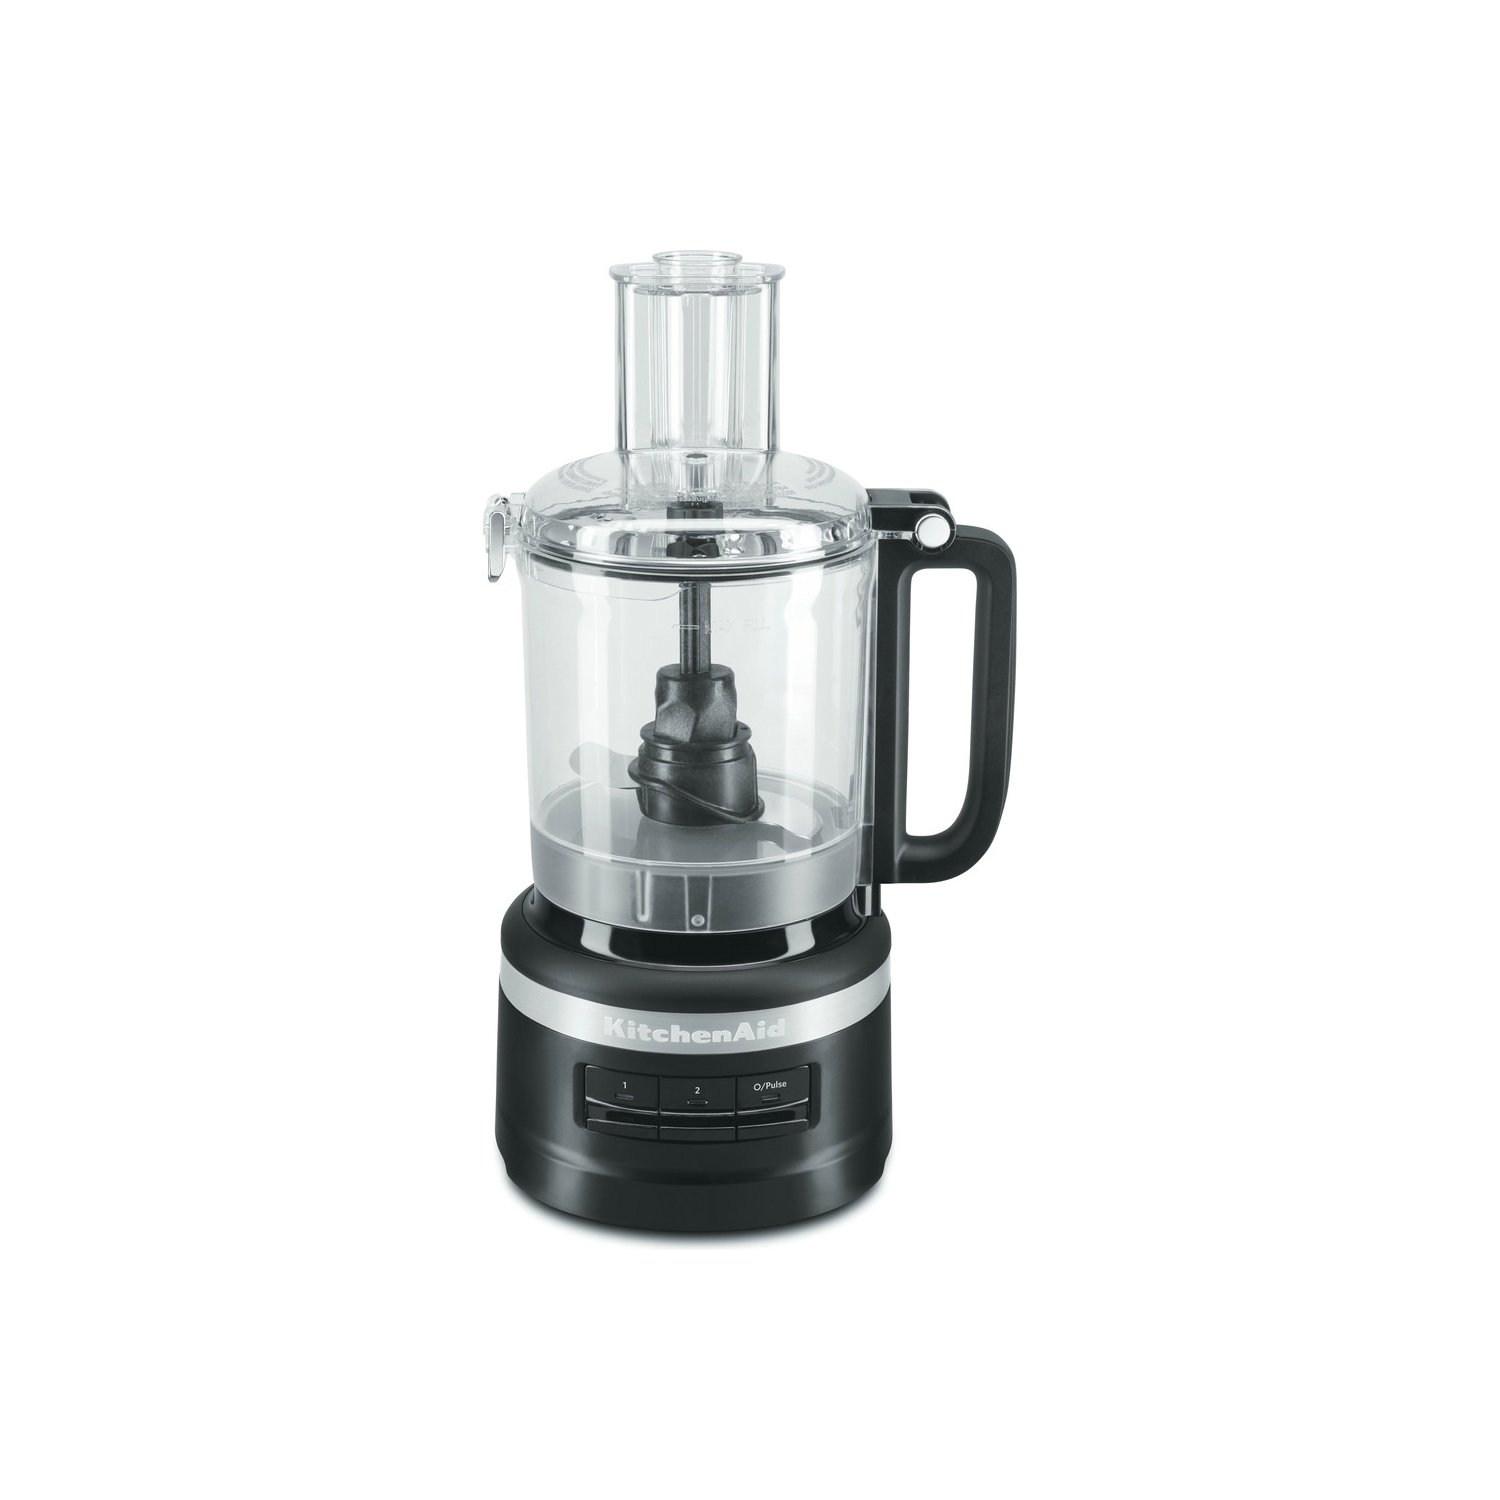 KitchenAid 2.1 Litre Food Processor - Matte Black - 0